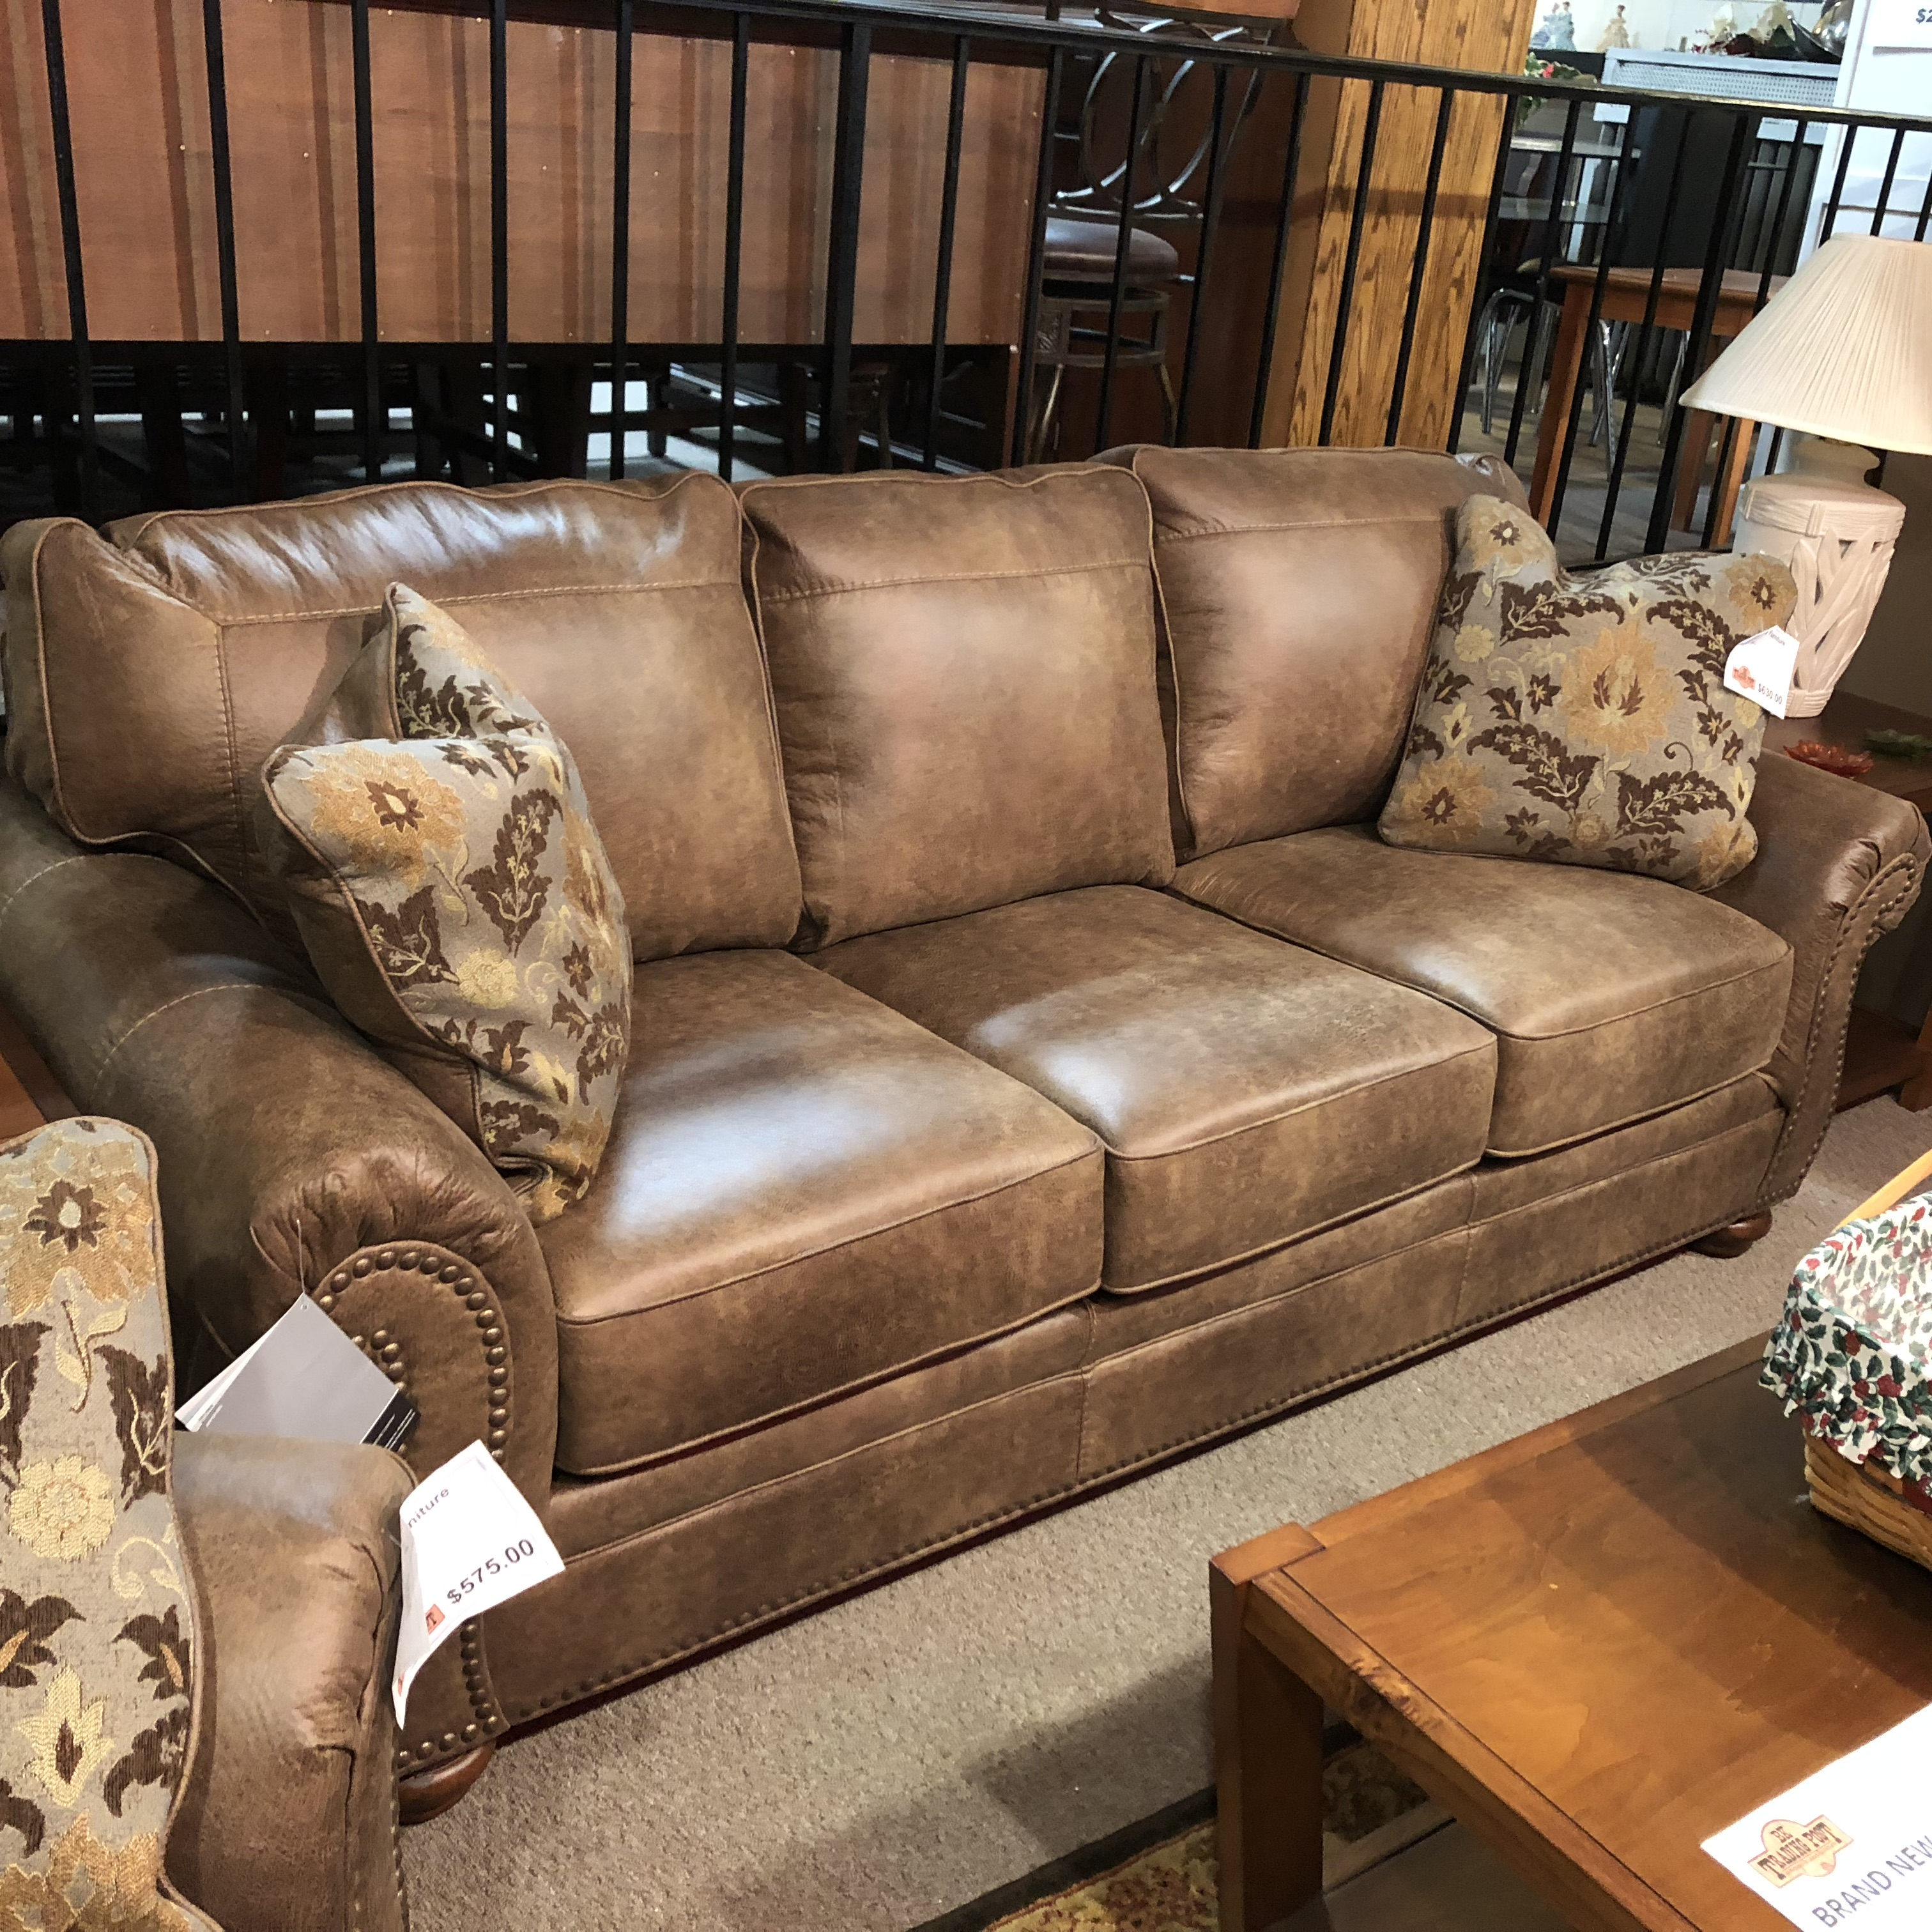 Online Sofa Store: Sofa Sets: SOLD BUT CAN BE REORDERED